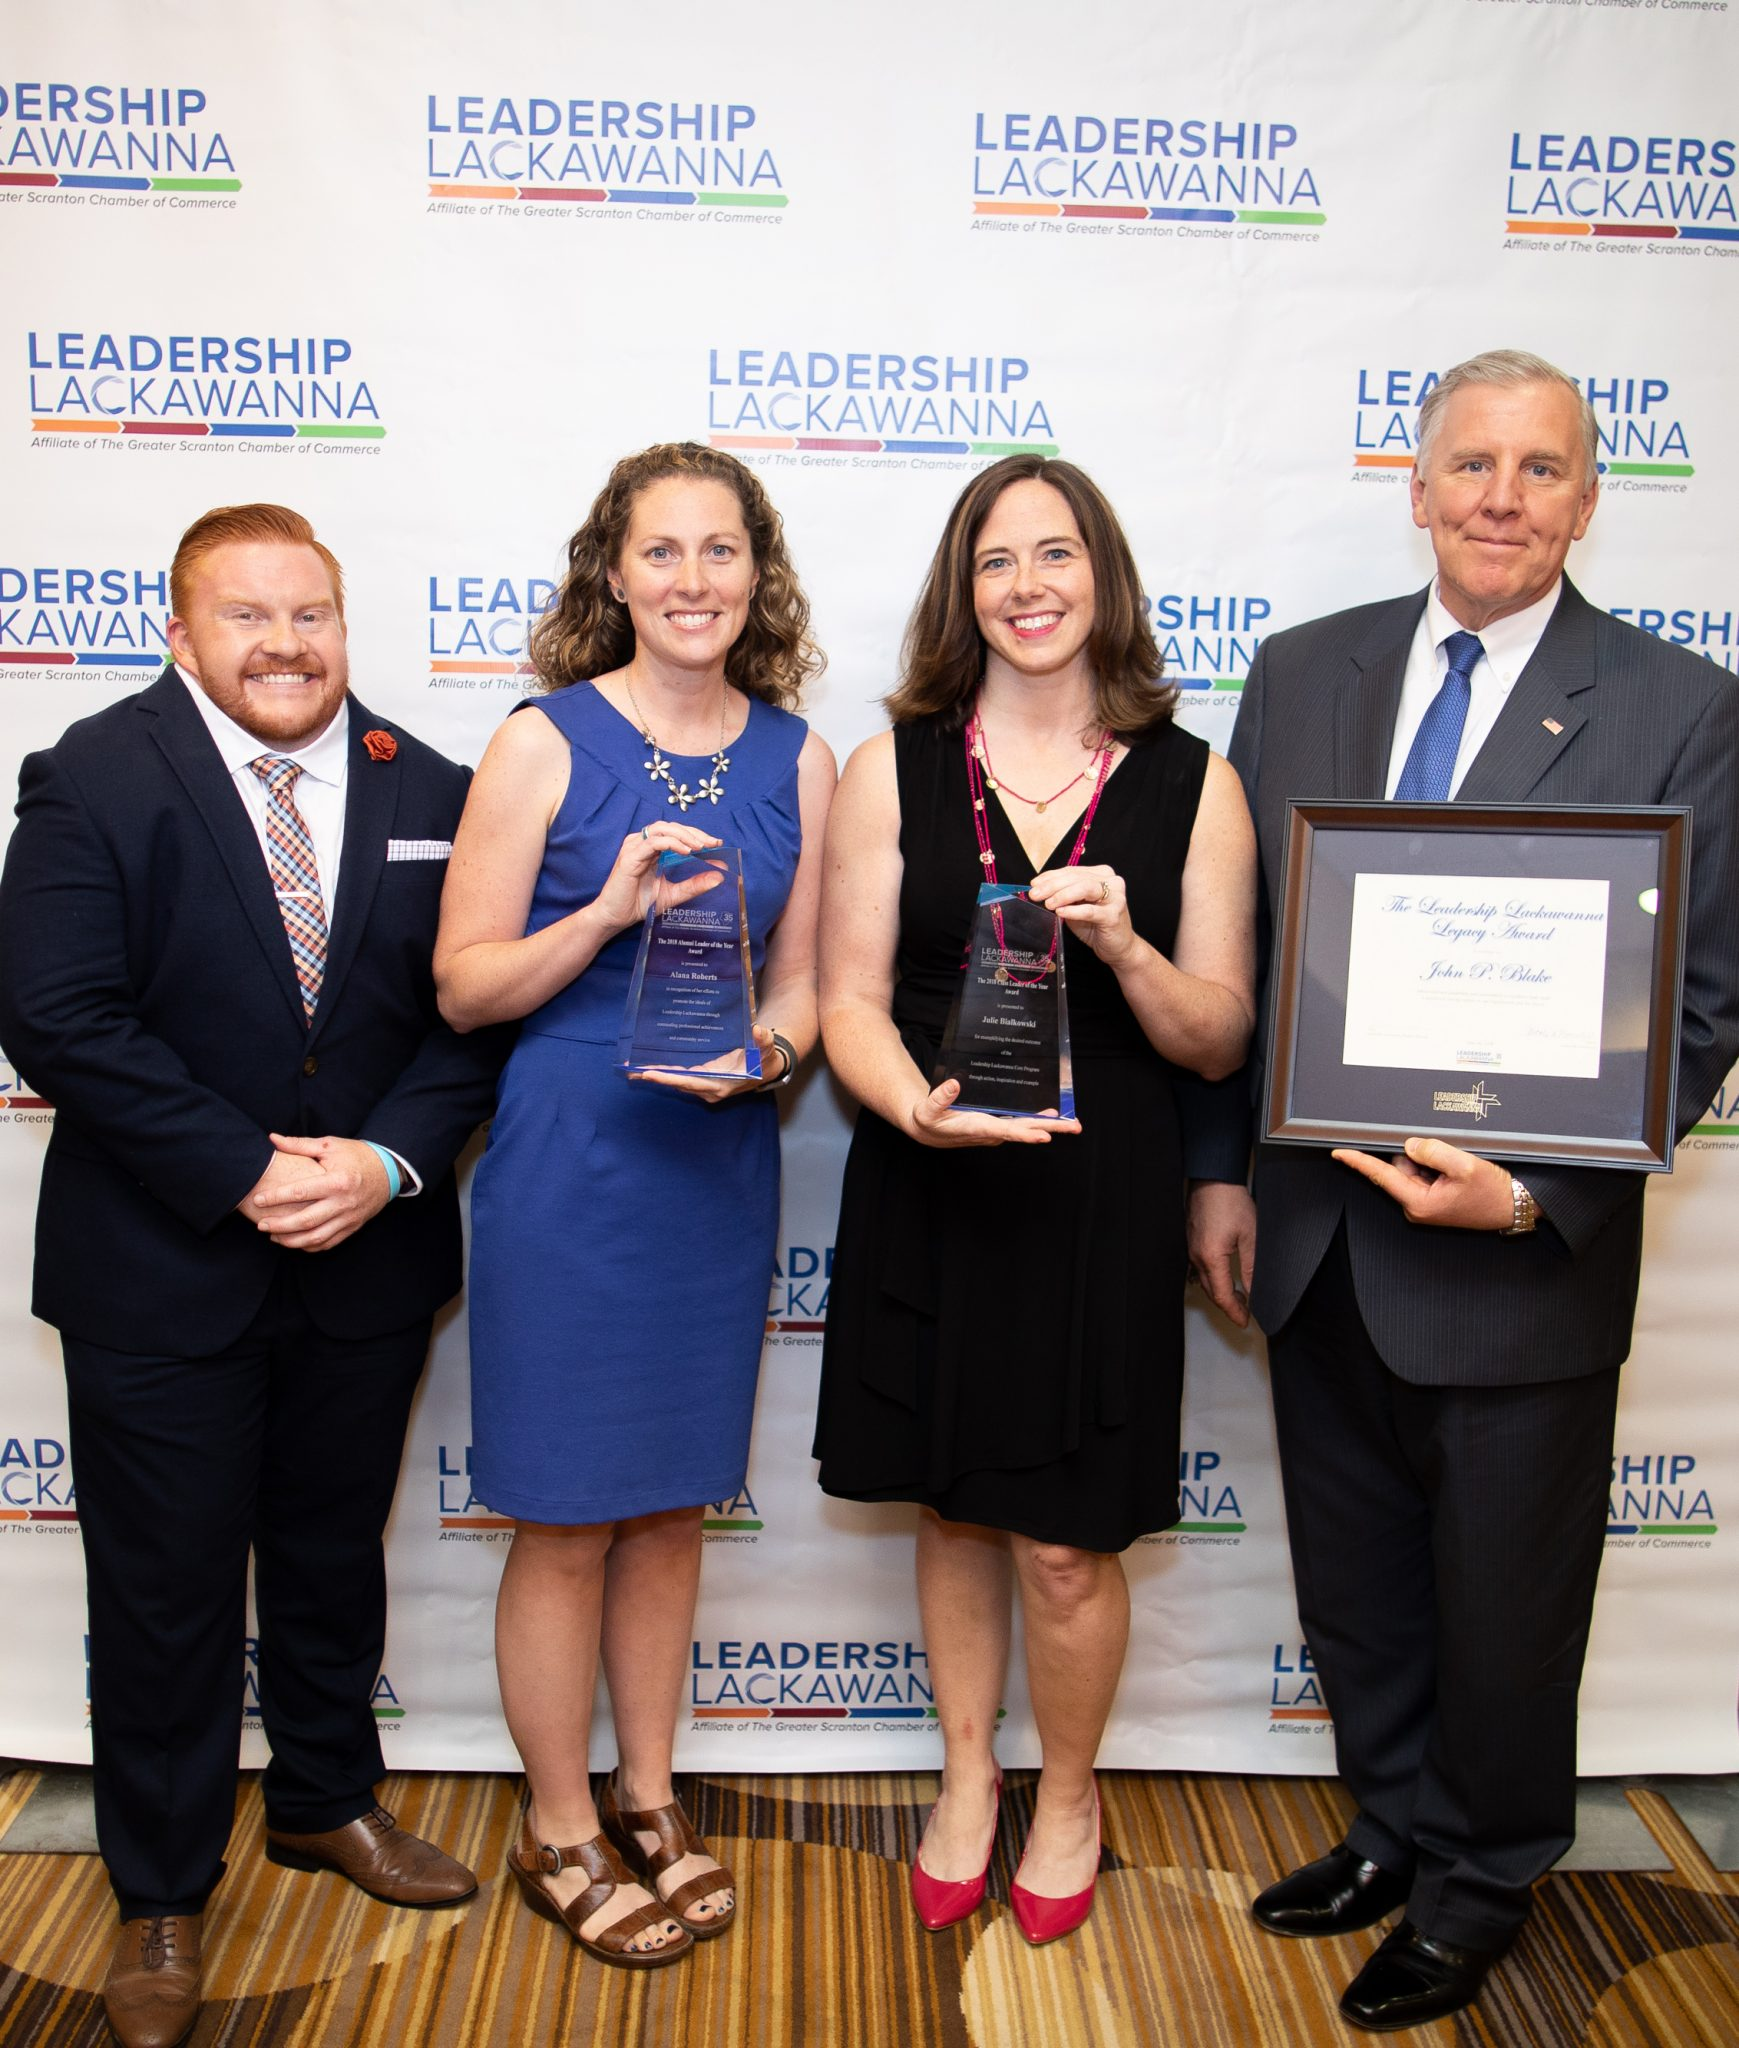 Leadership Lackawanna Announces Award Recipients